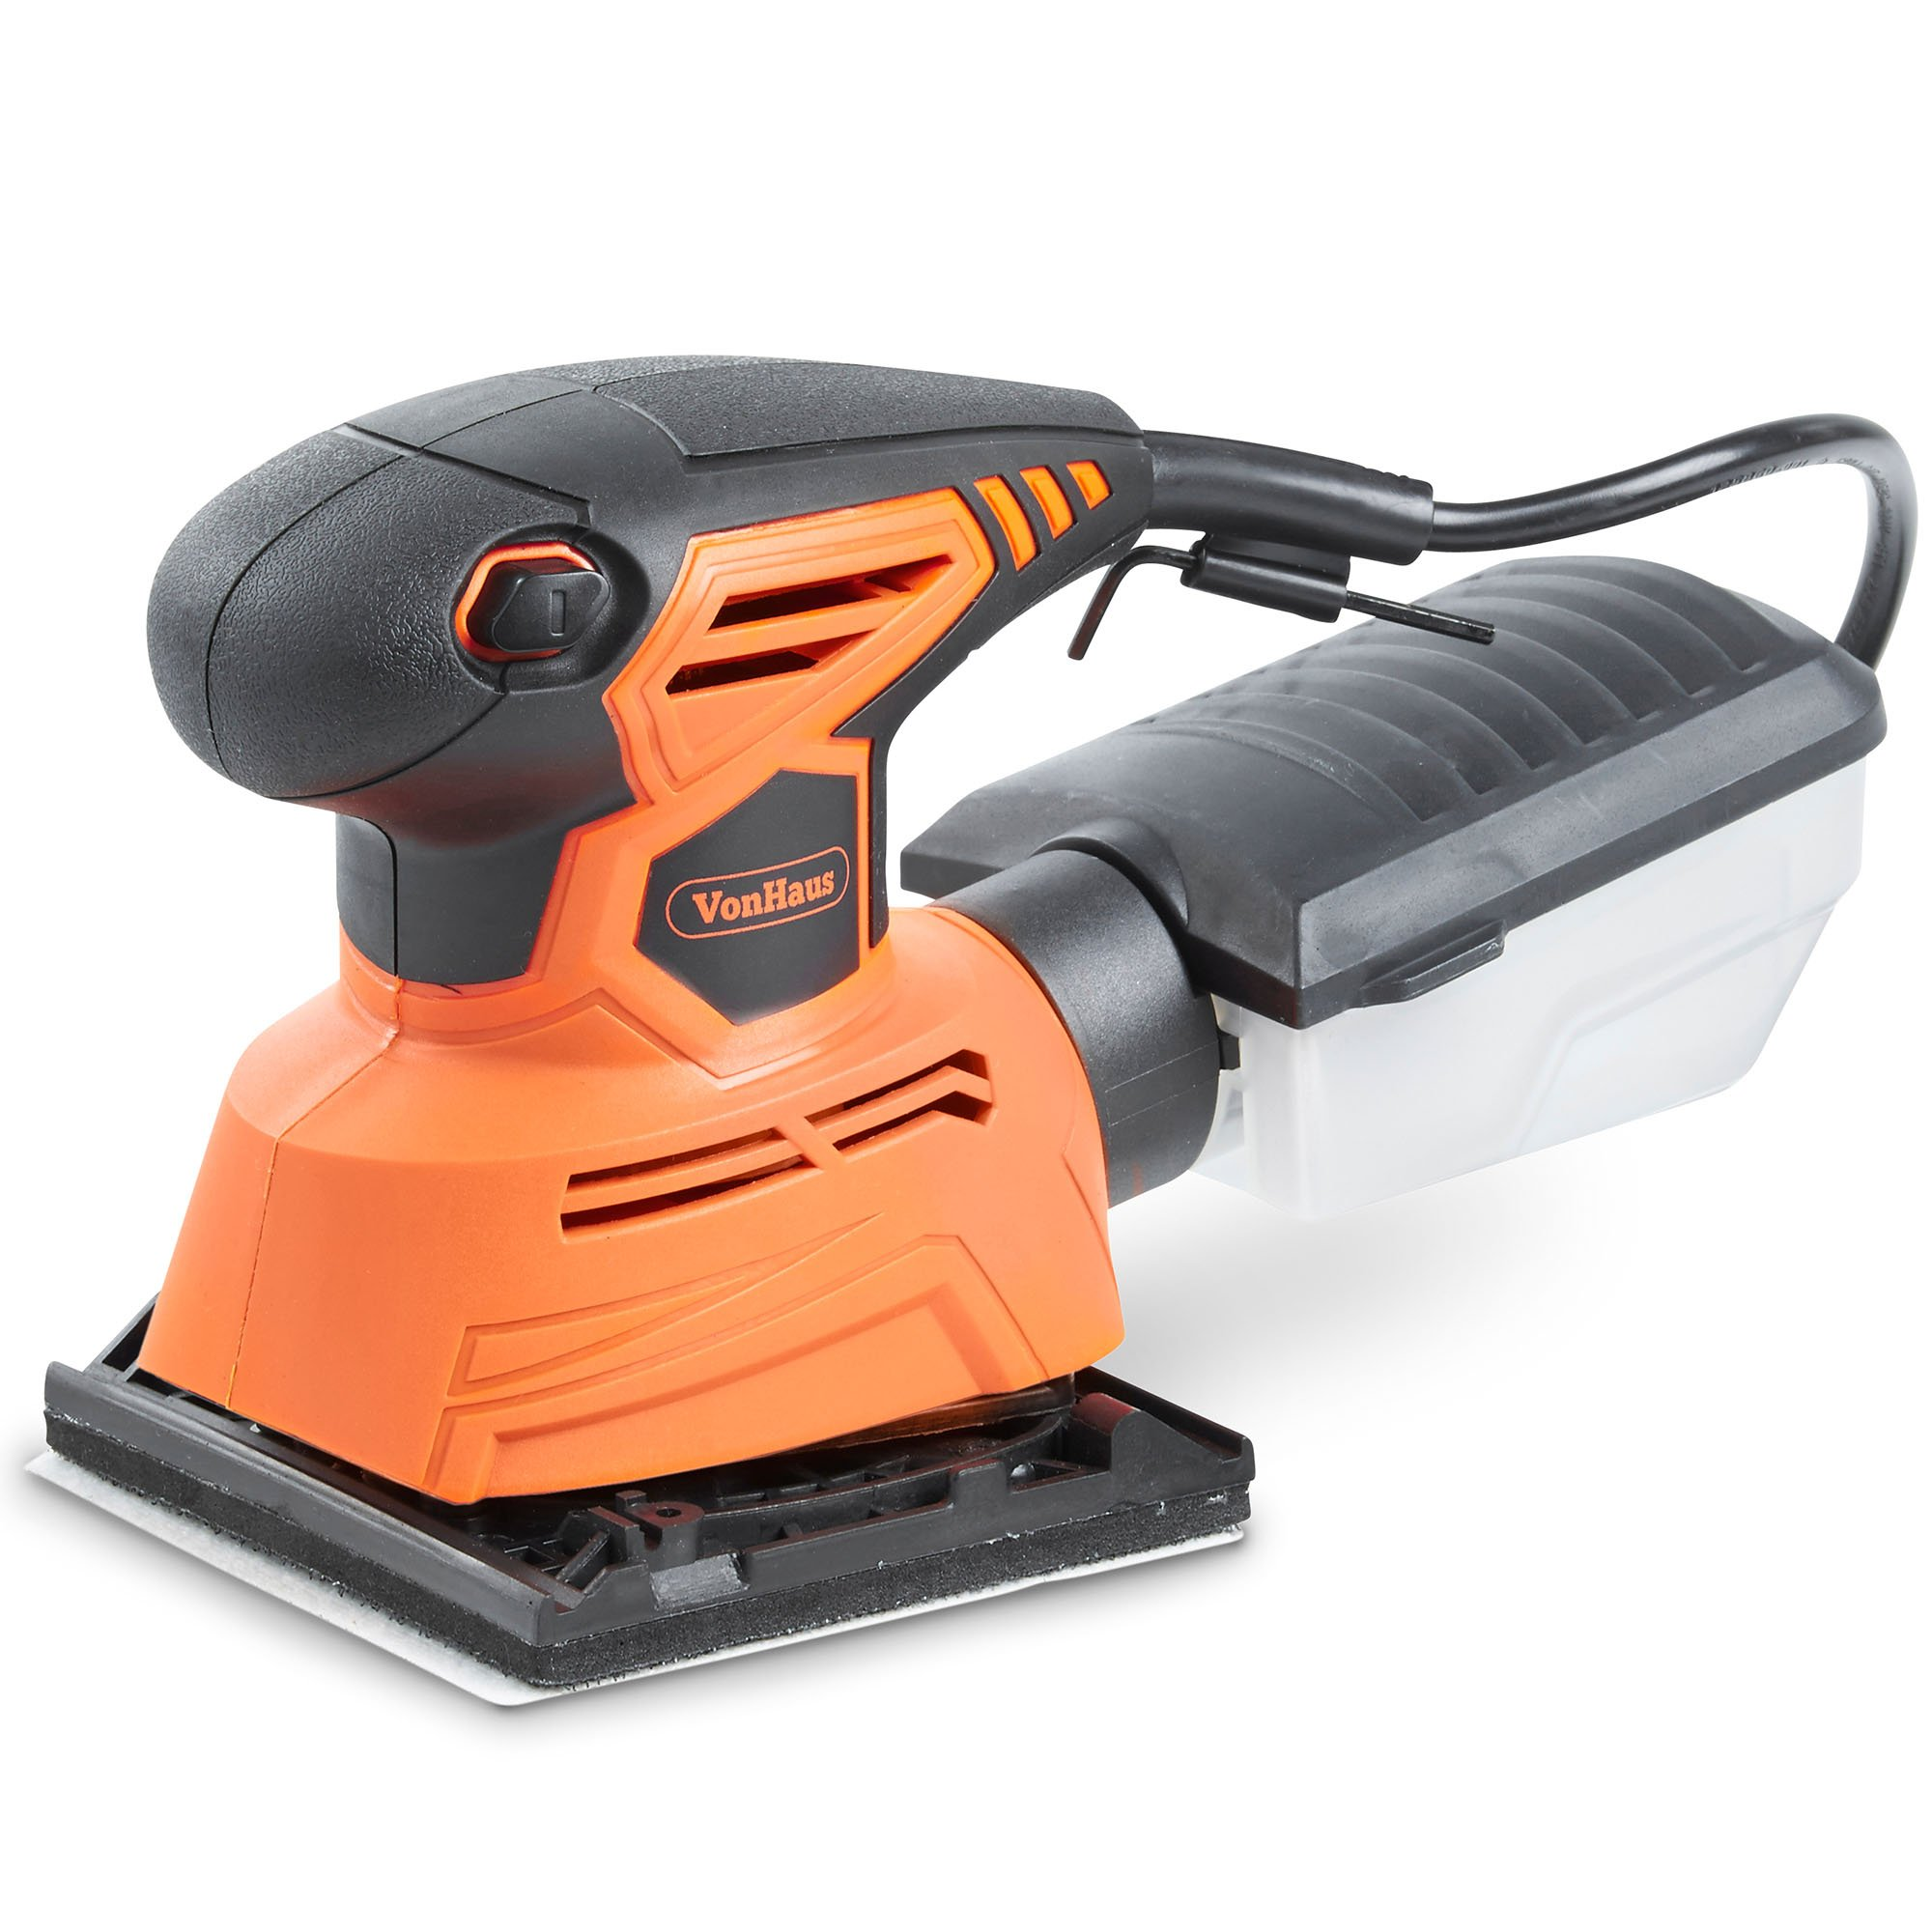 VonHaus 1.1A 2 in 1 Sheet & Detail Sander - 14000 RPM with 6 Sanding Sheets Included - Multi-Use, Compact Lightweight Design with Dust Extraction System and 6ft Power Cord by VonHaus (Image #8)